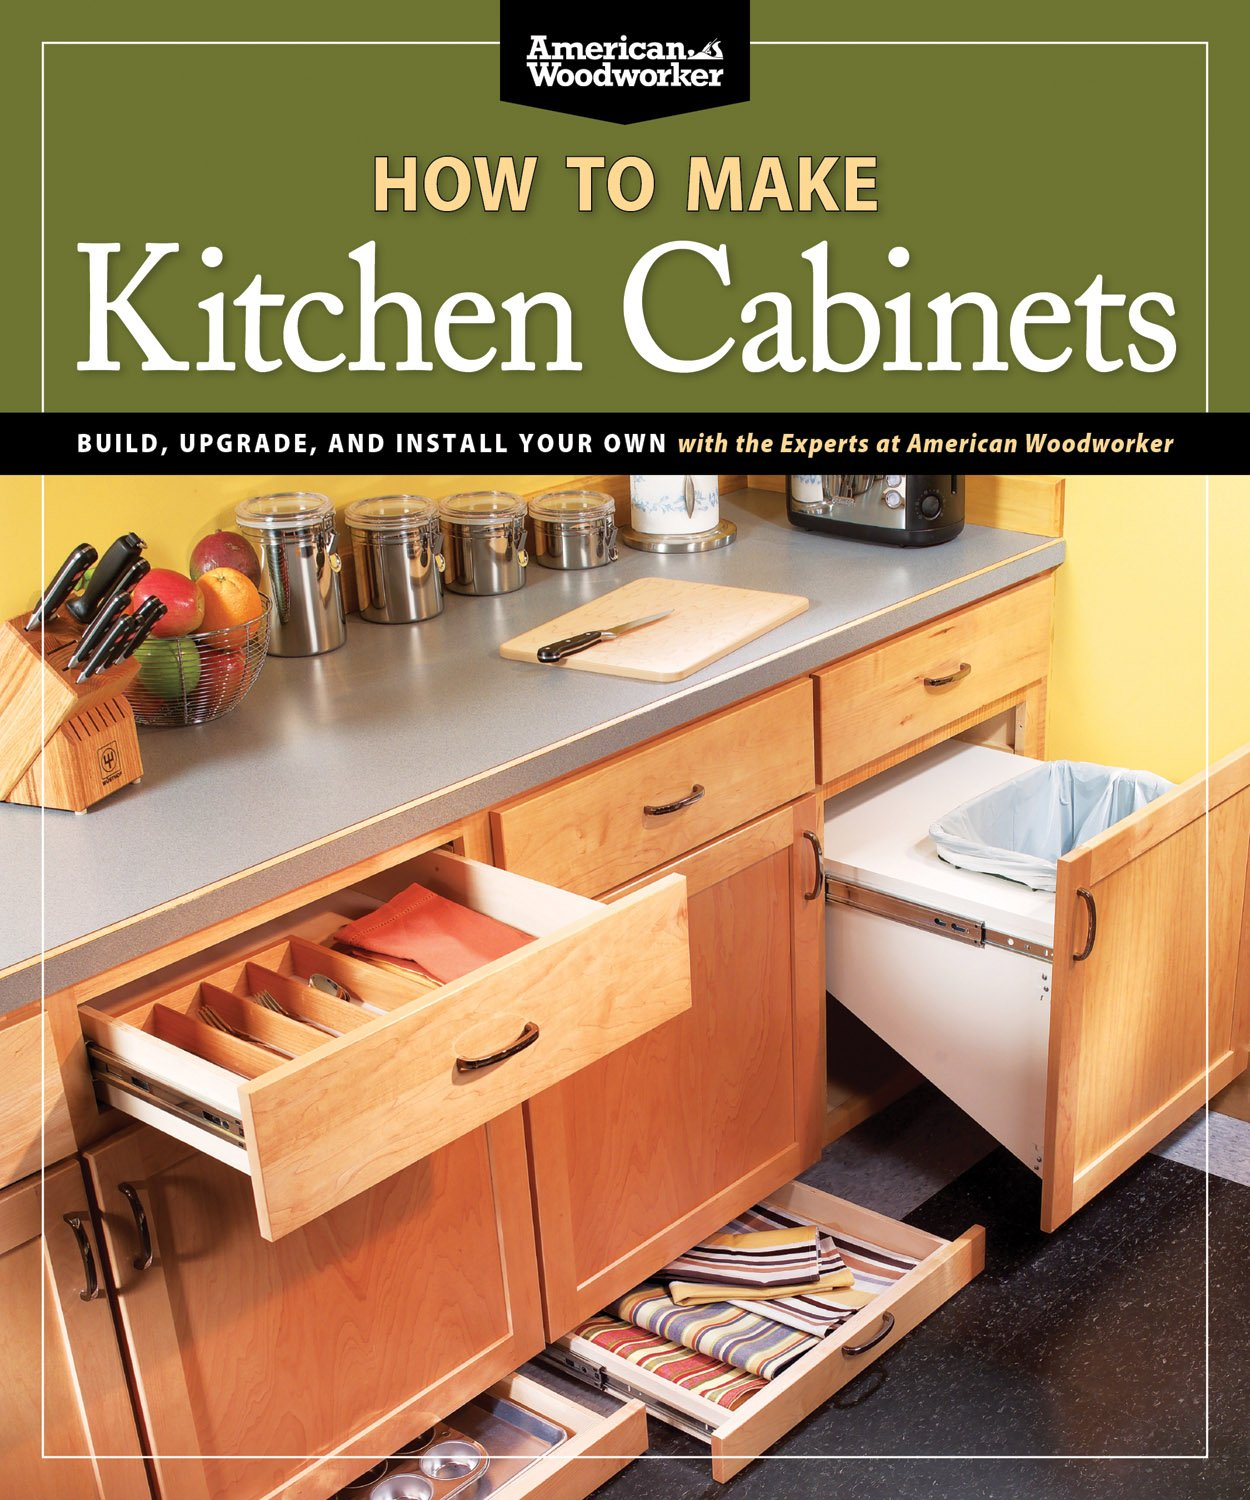 How To Make Kitchen Cabinets (Best Of American Woodworker): Build, Upgrade,  And Install Your Own With The Experts At American Woodworker: Randy  Johnson: ...